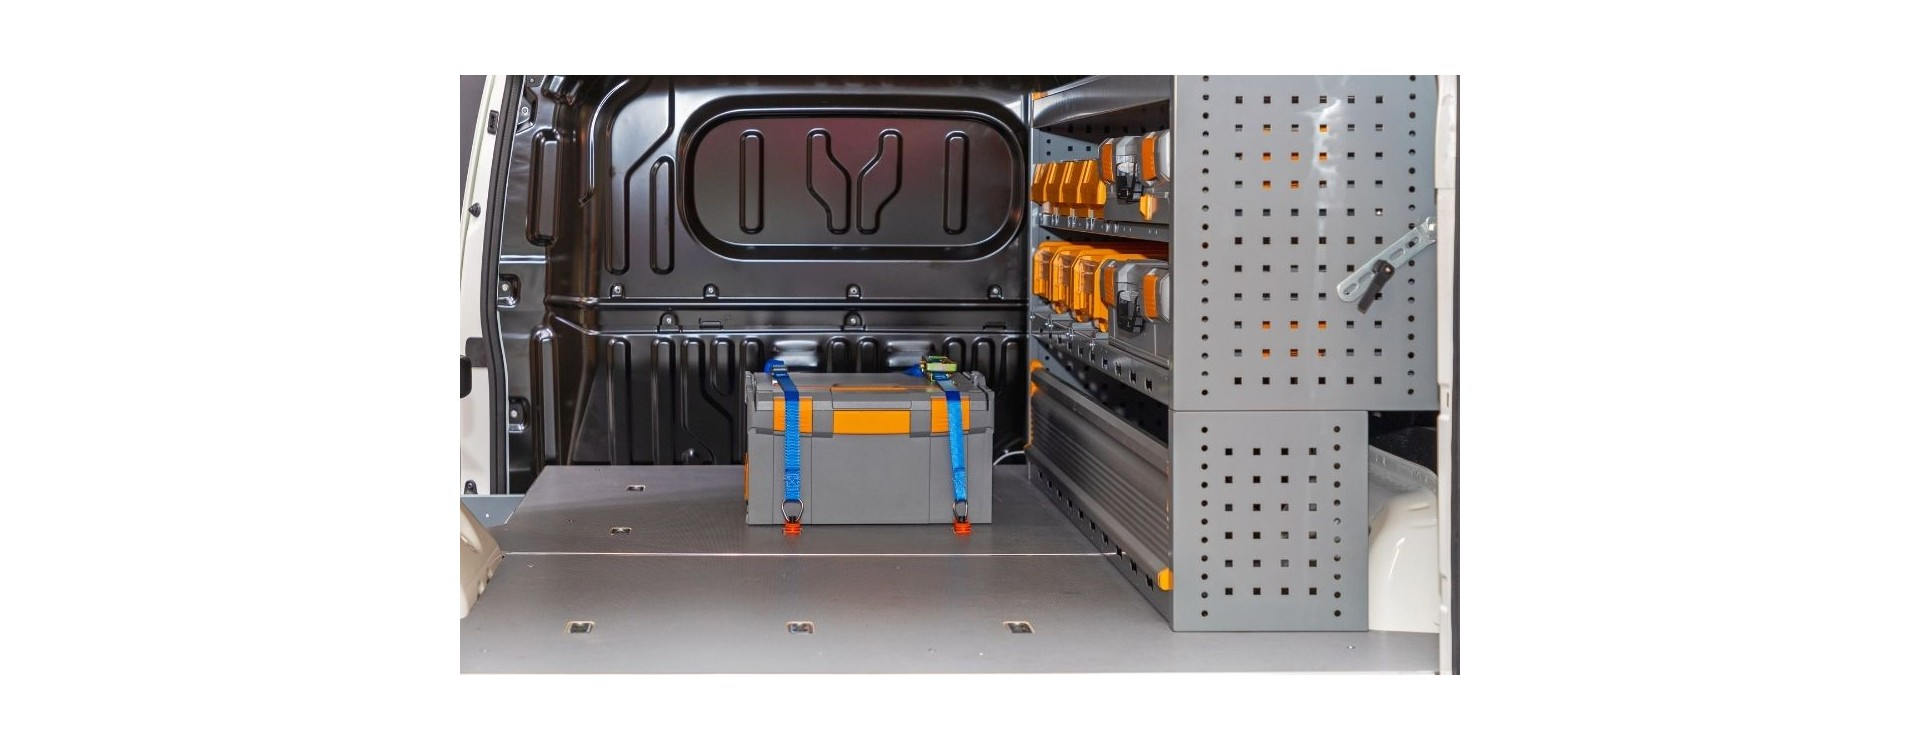 Reasons To Install Shelving In Your Work Van